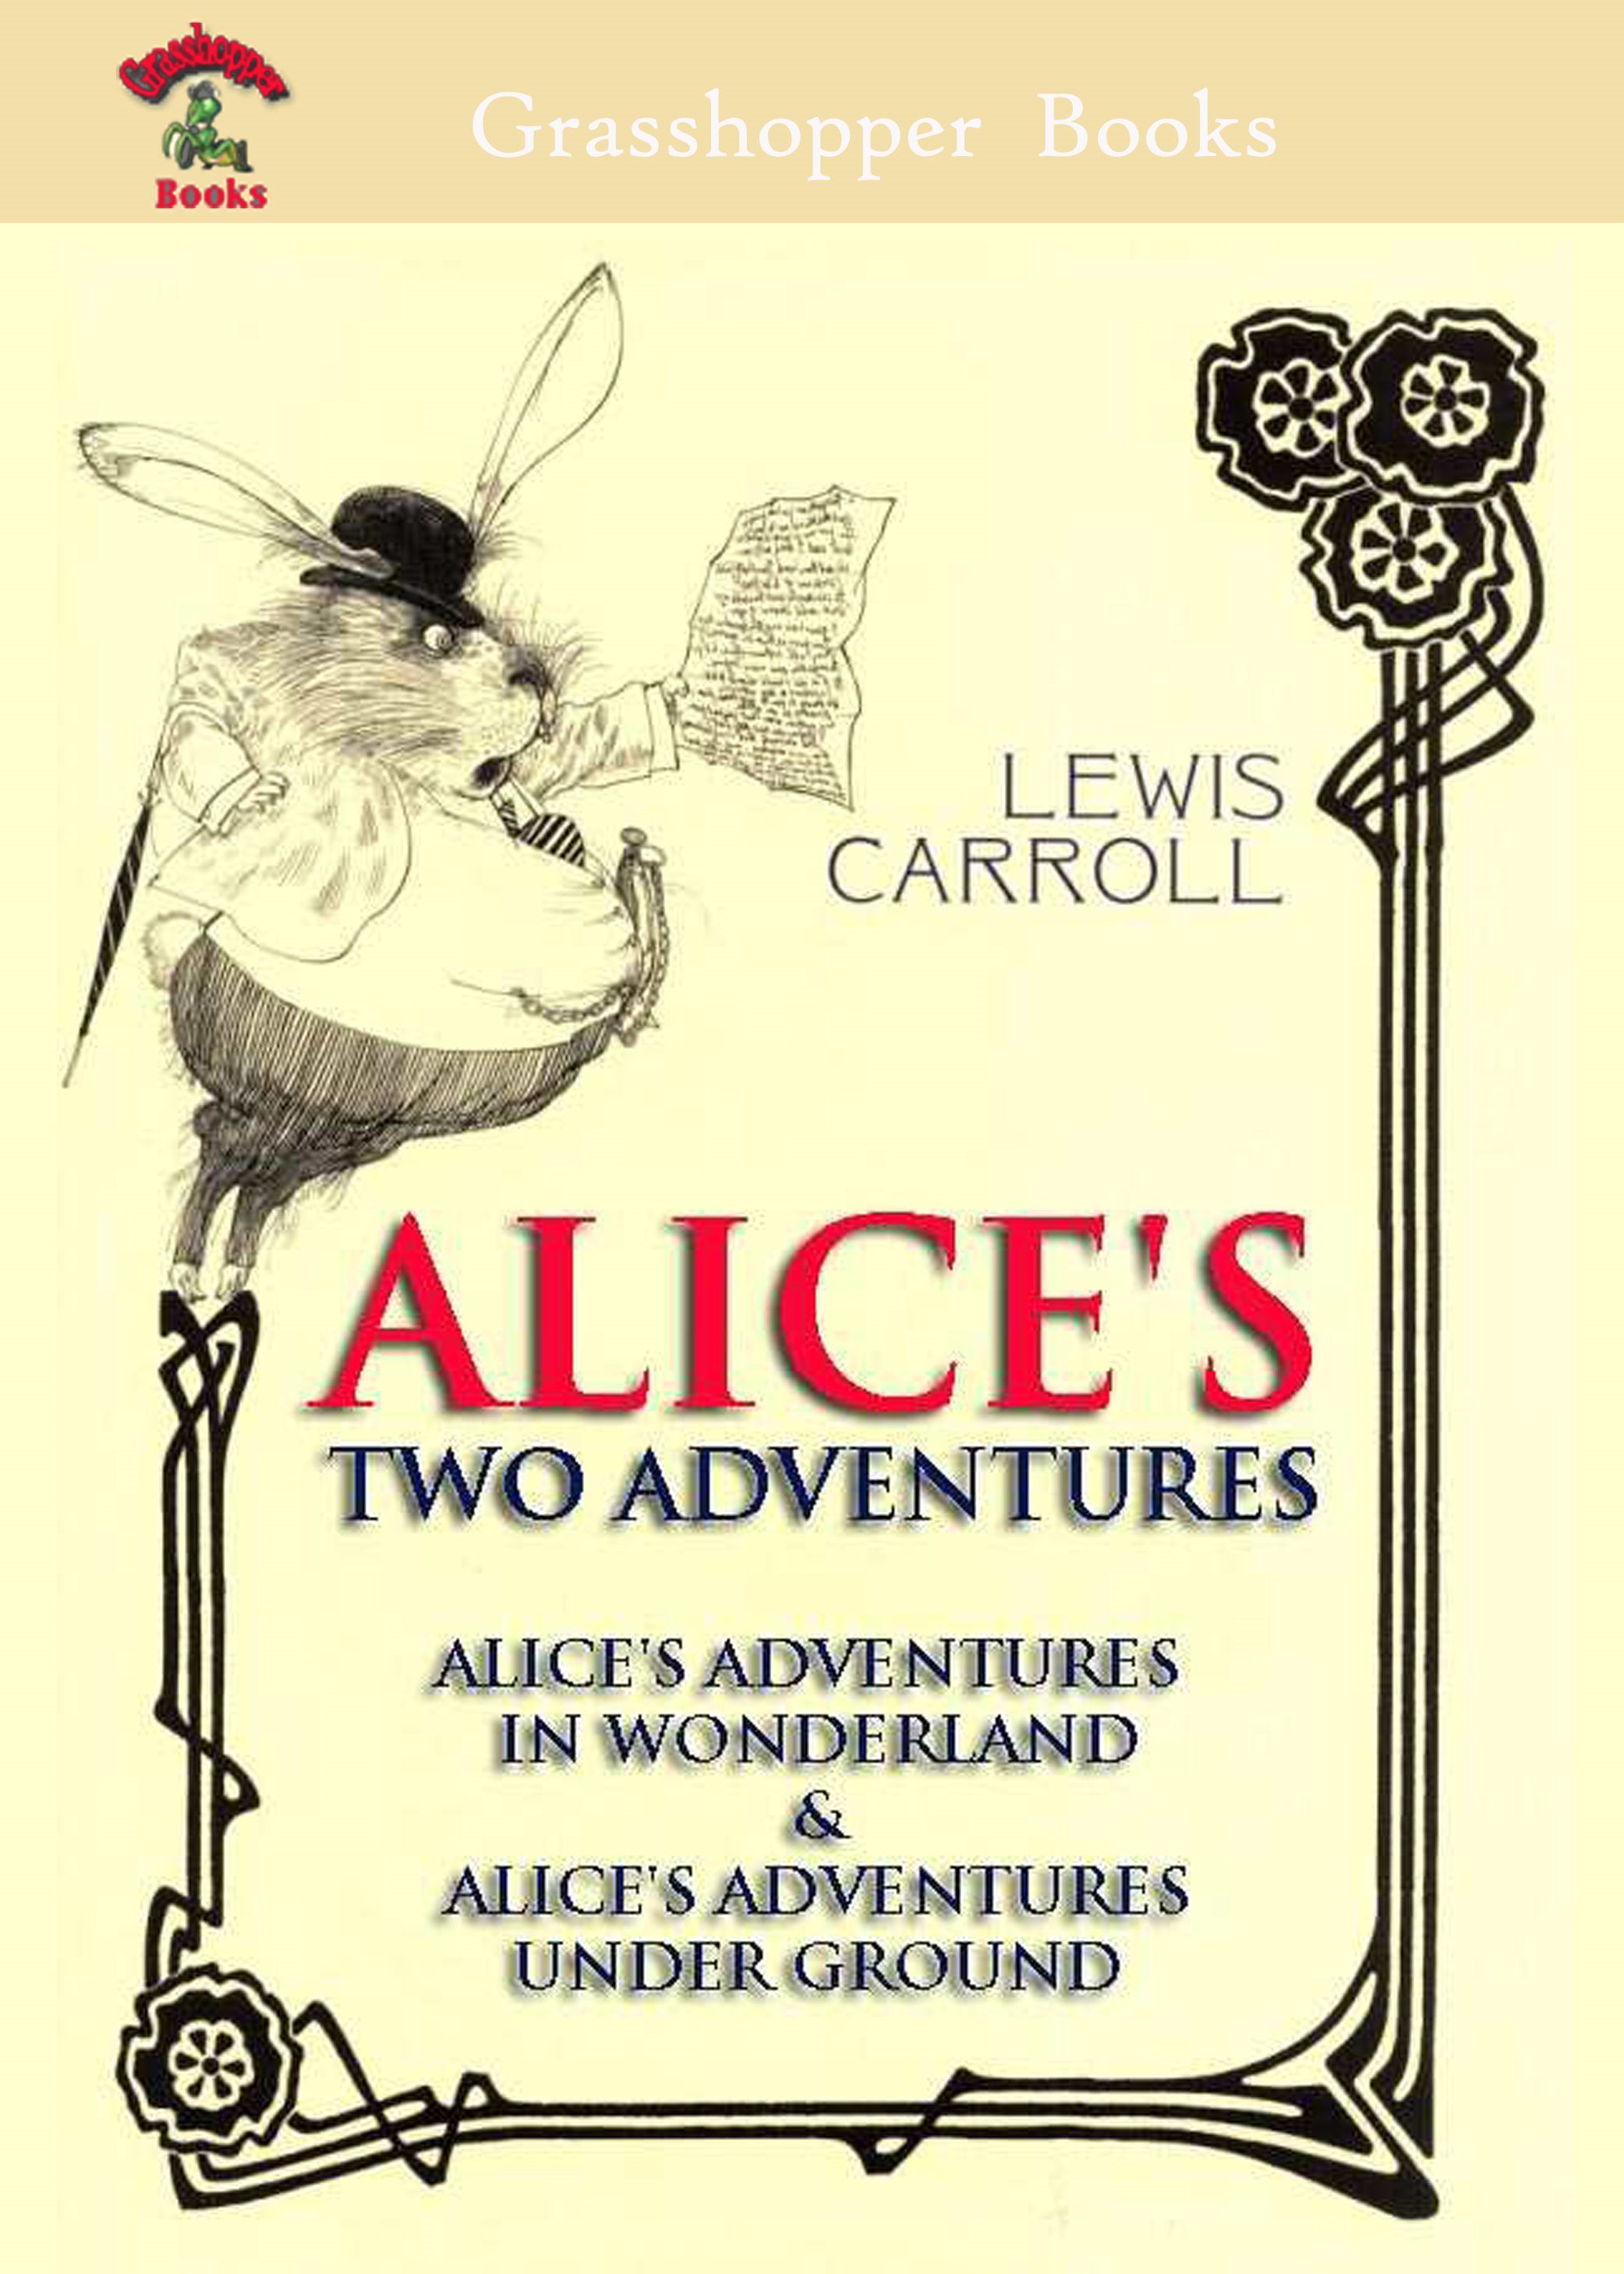 ALICE'S TWO ADVENTURES By: LEWIS CARROLL